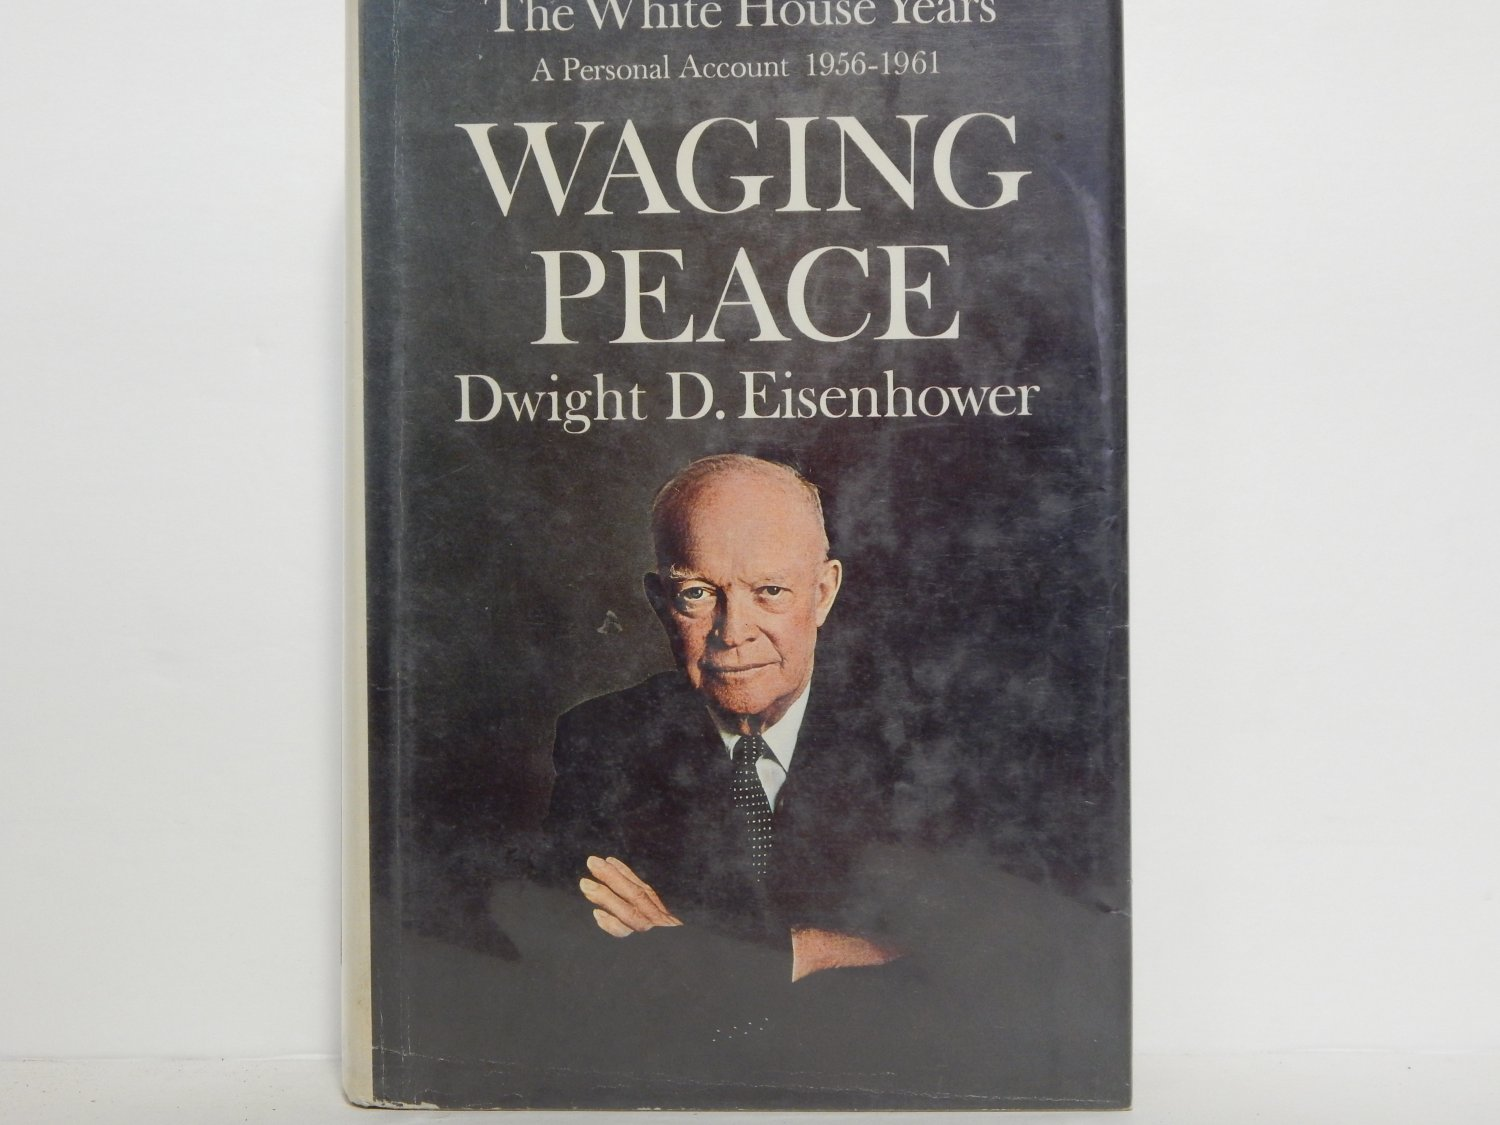 Waging Peace by Dwight D. Eisenhower Hard Cover